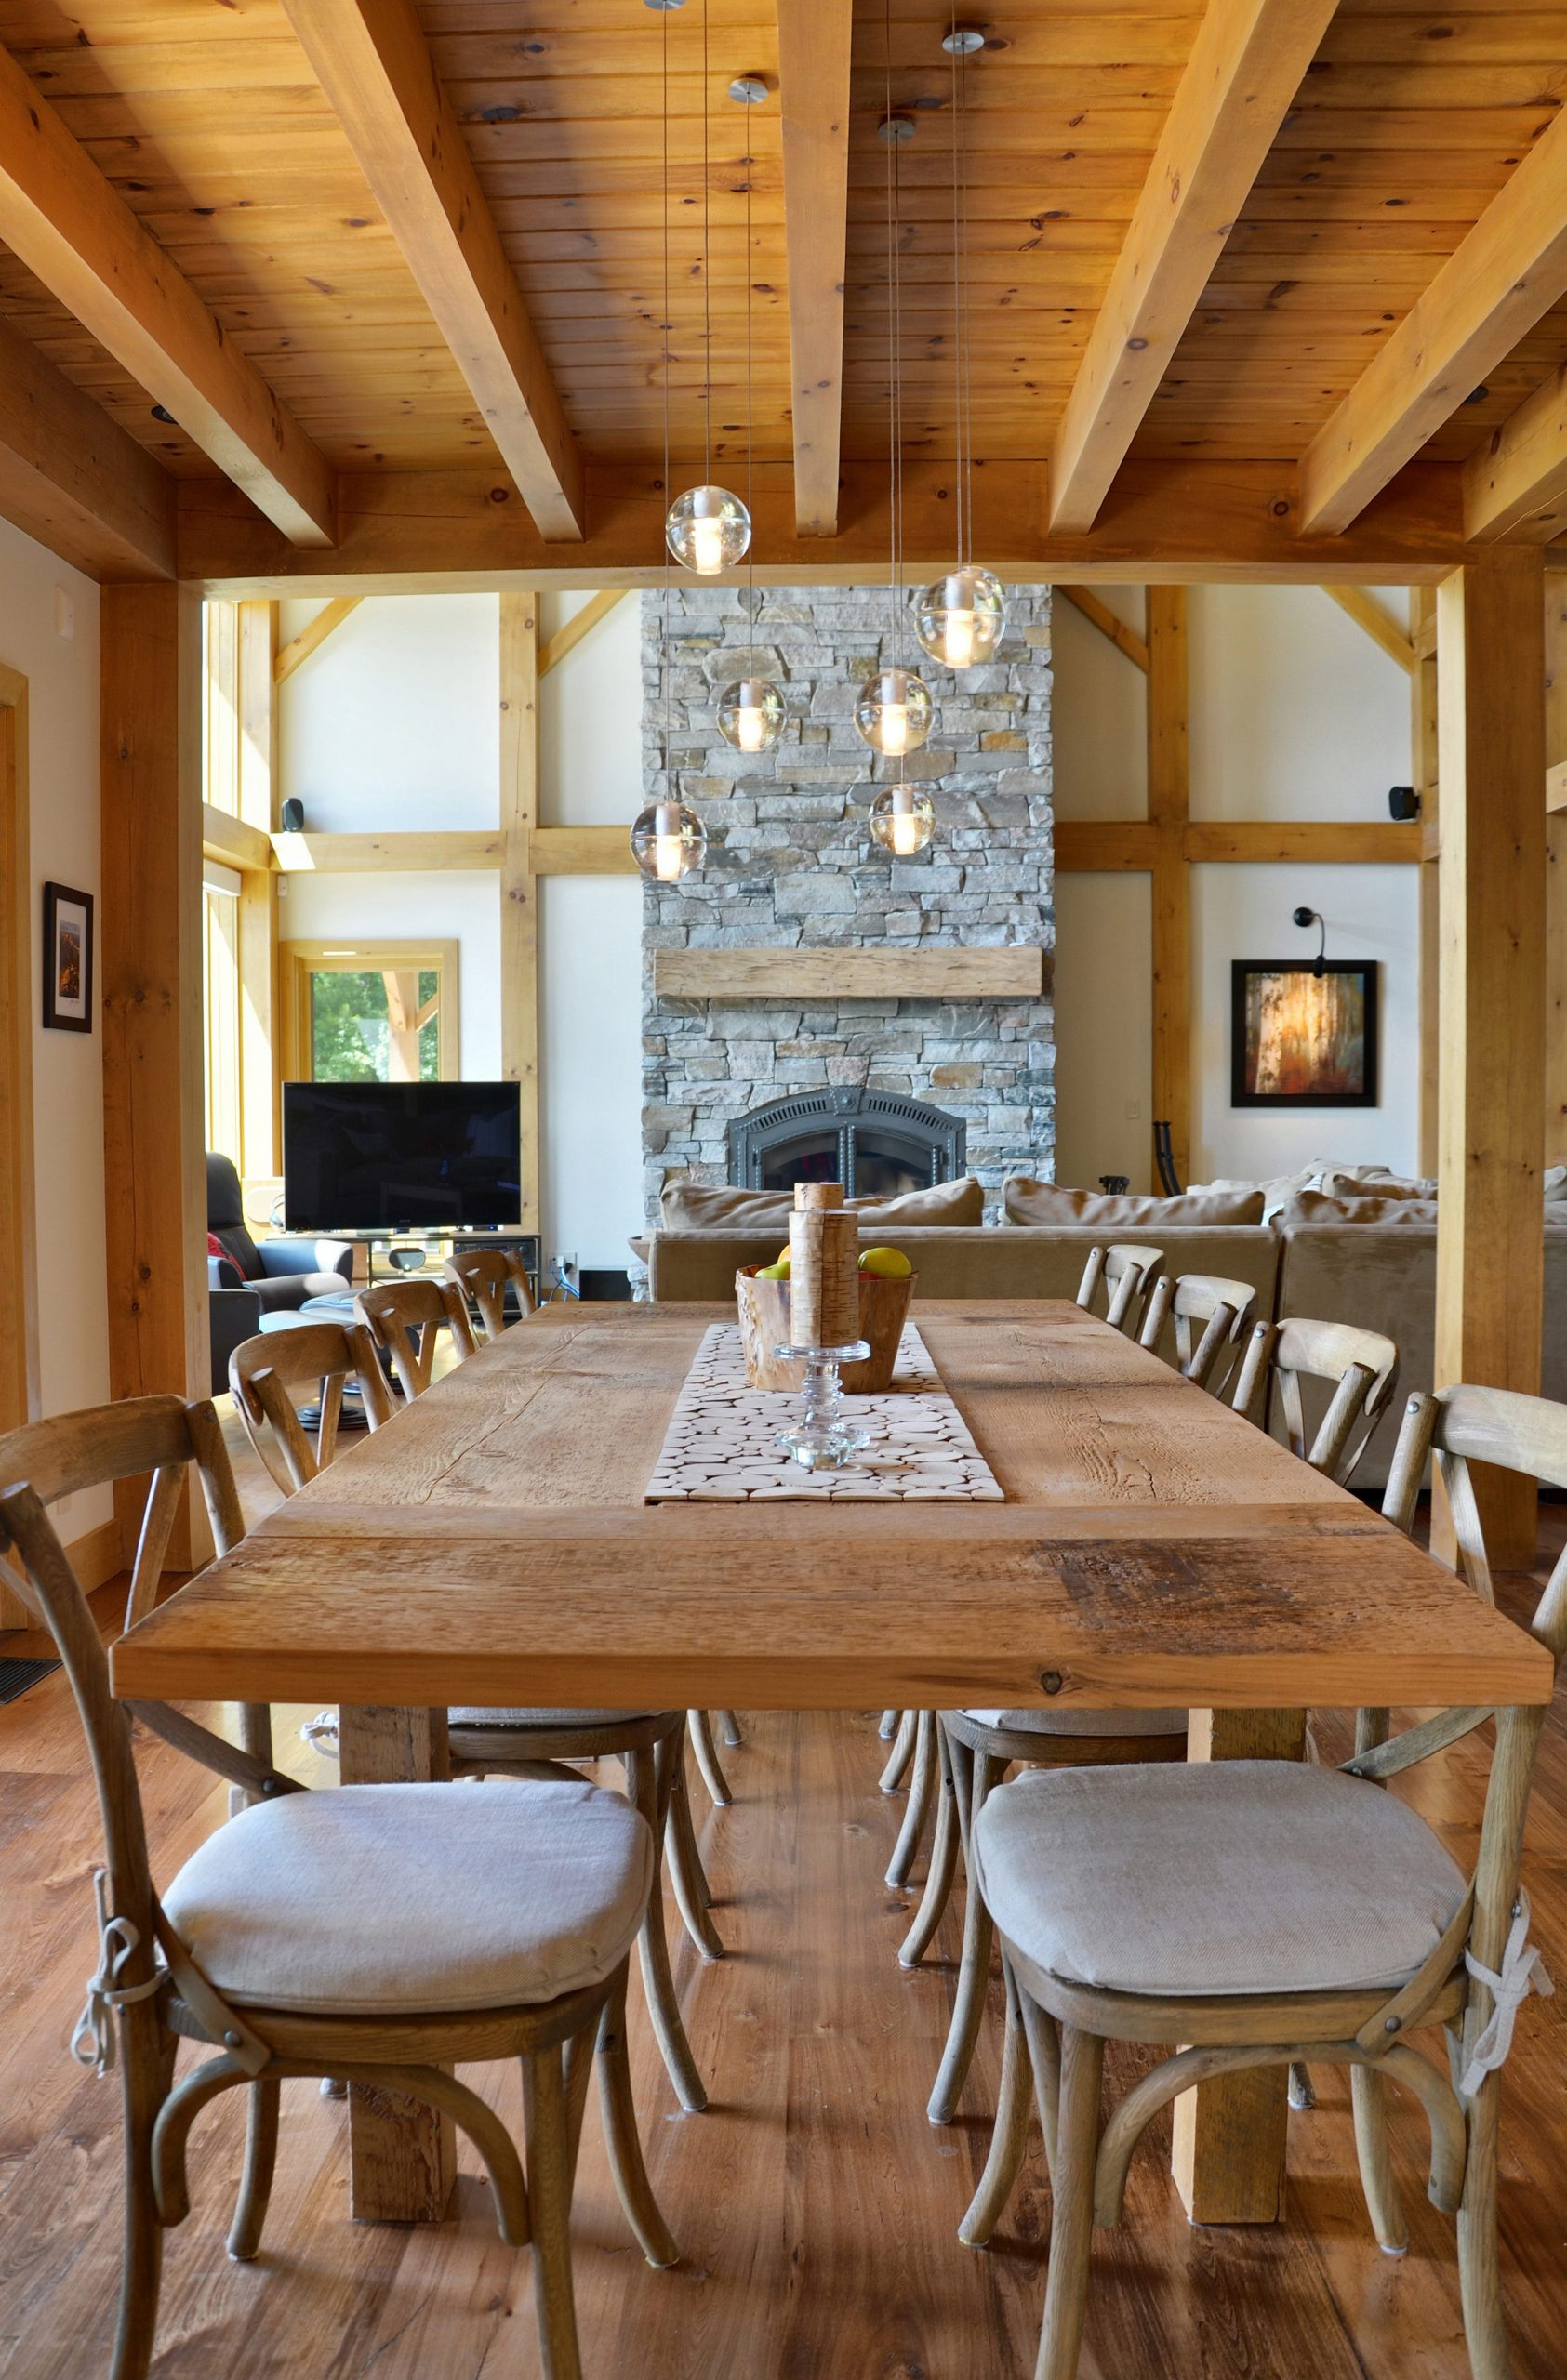 Normerica Timber Frame, Interior, Fireplace, Dining Room